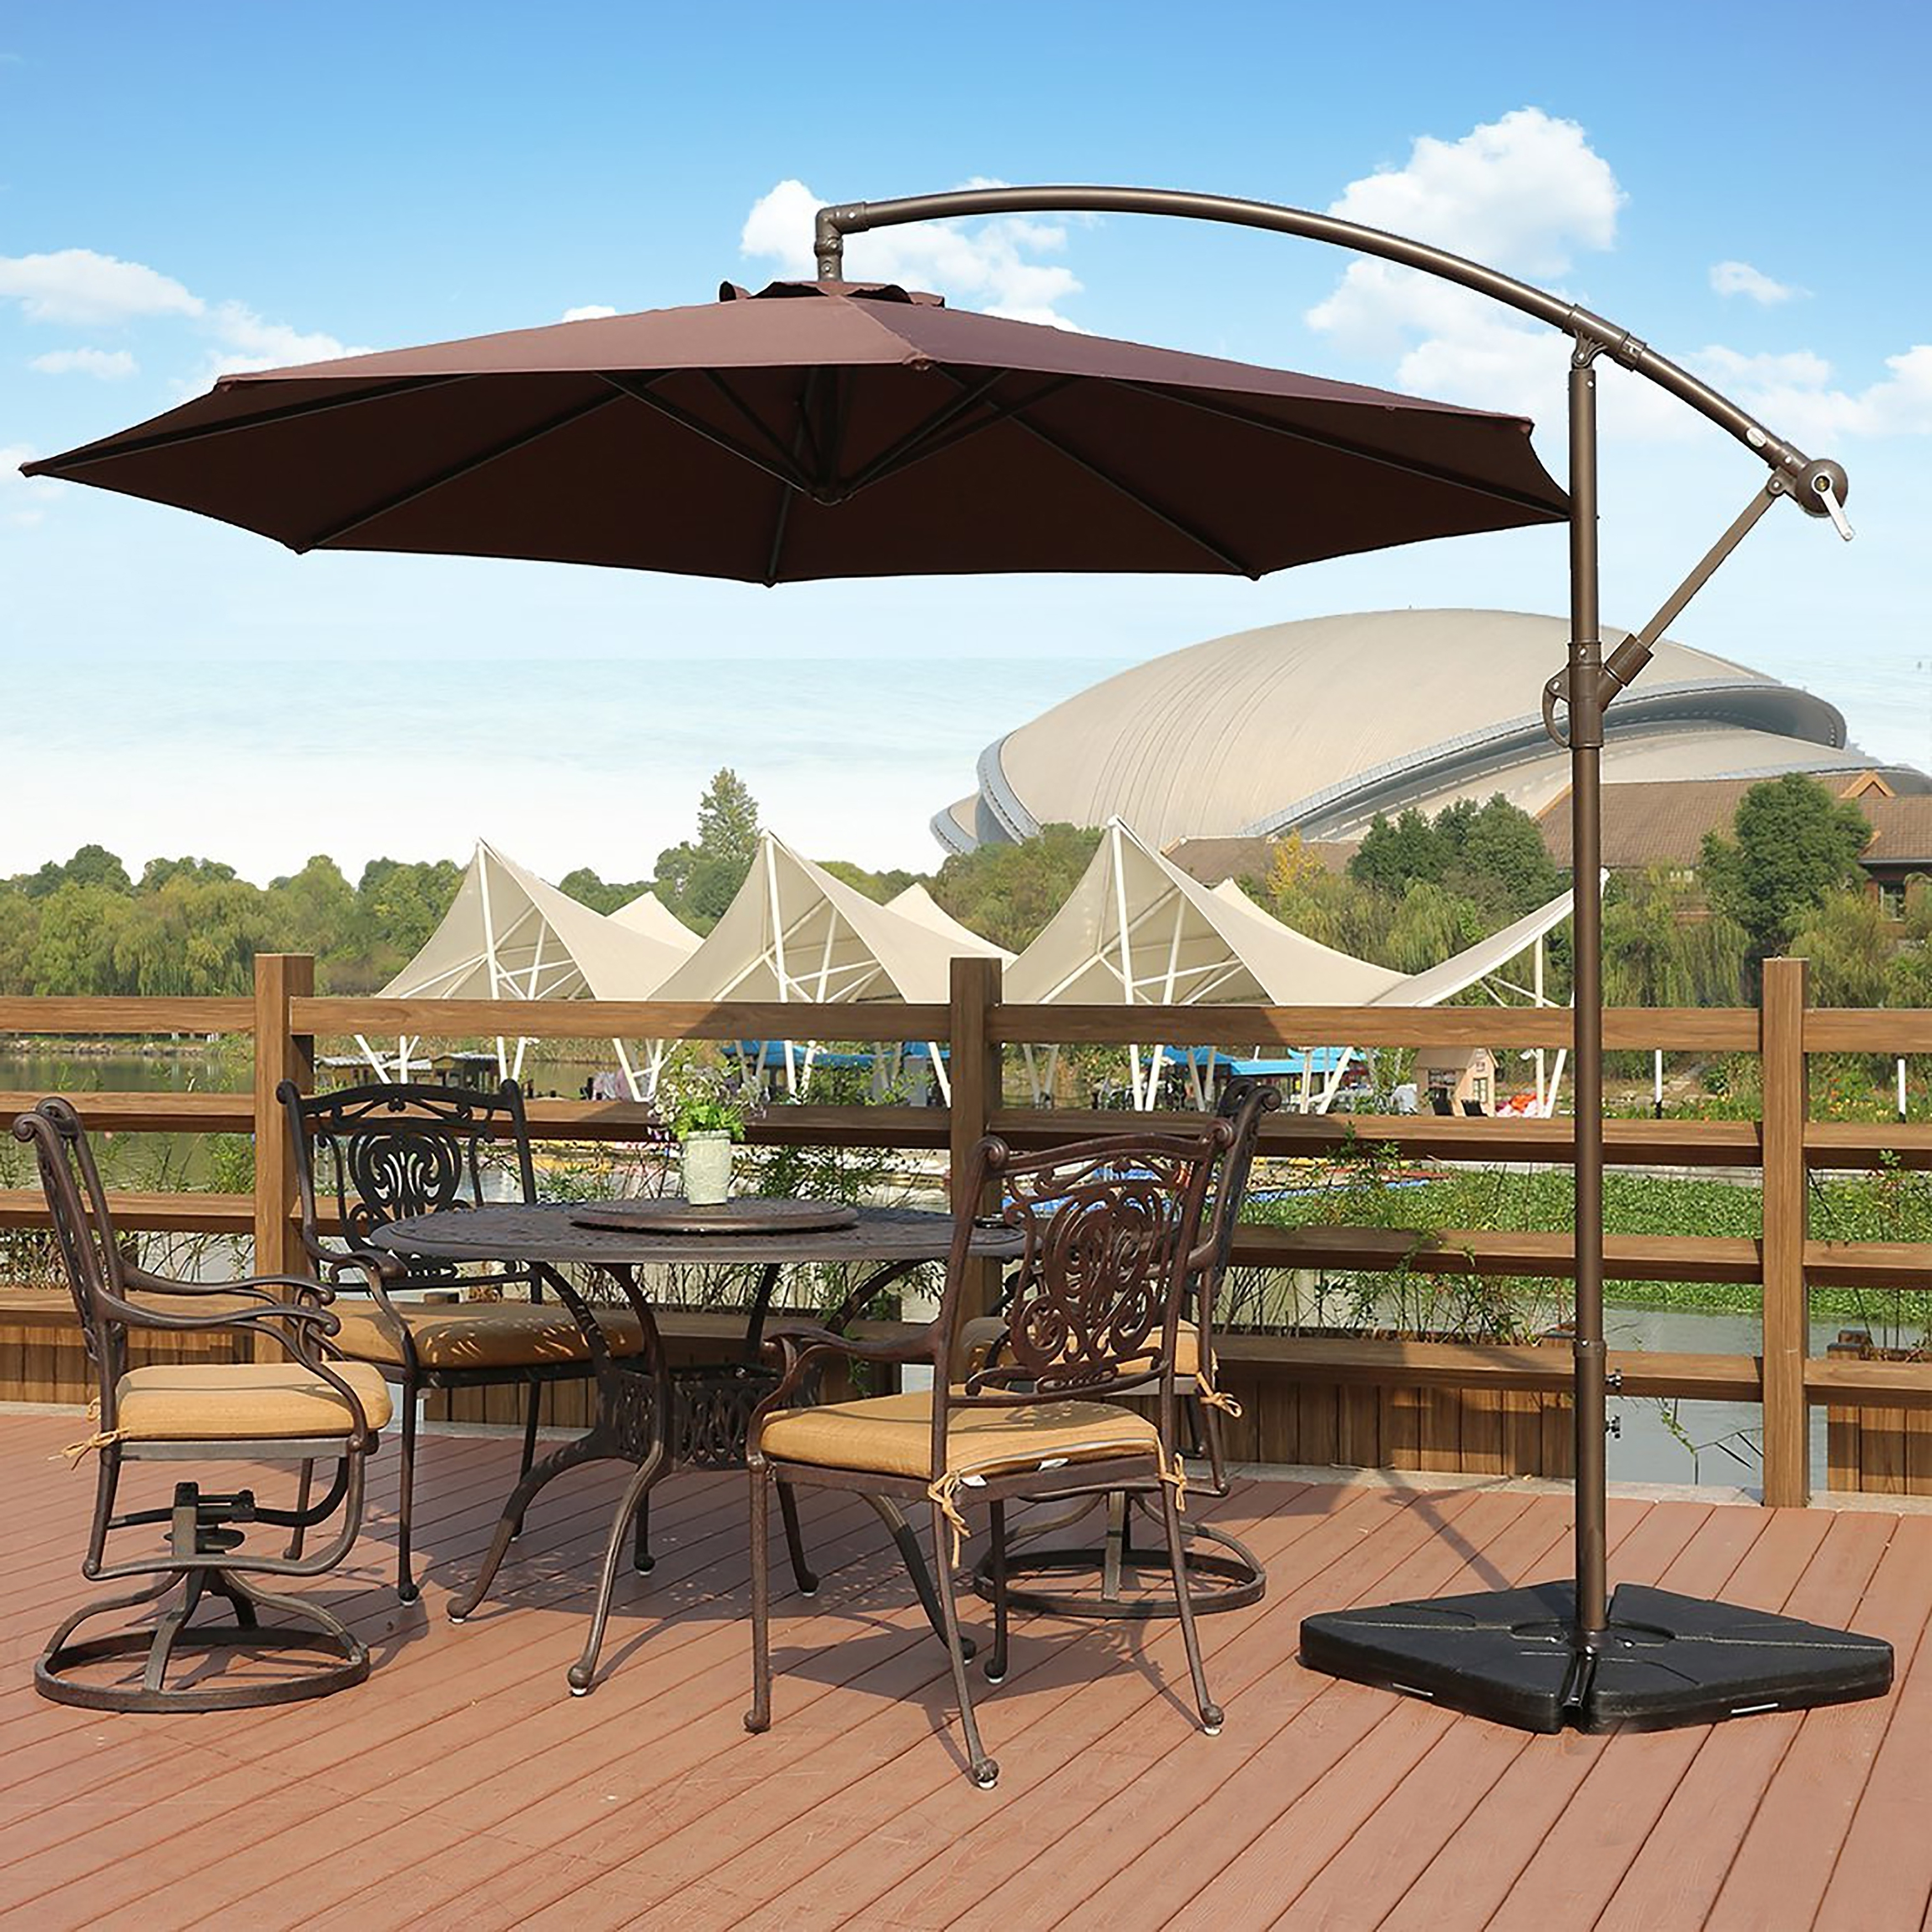 Newest Offset Cantilever Patio Umbrellas Regarding Weller 10 Ft Offset Cantilever Hanging Patio Umbrellawestin (View 8 of 20)